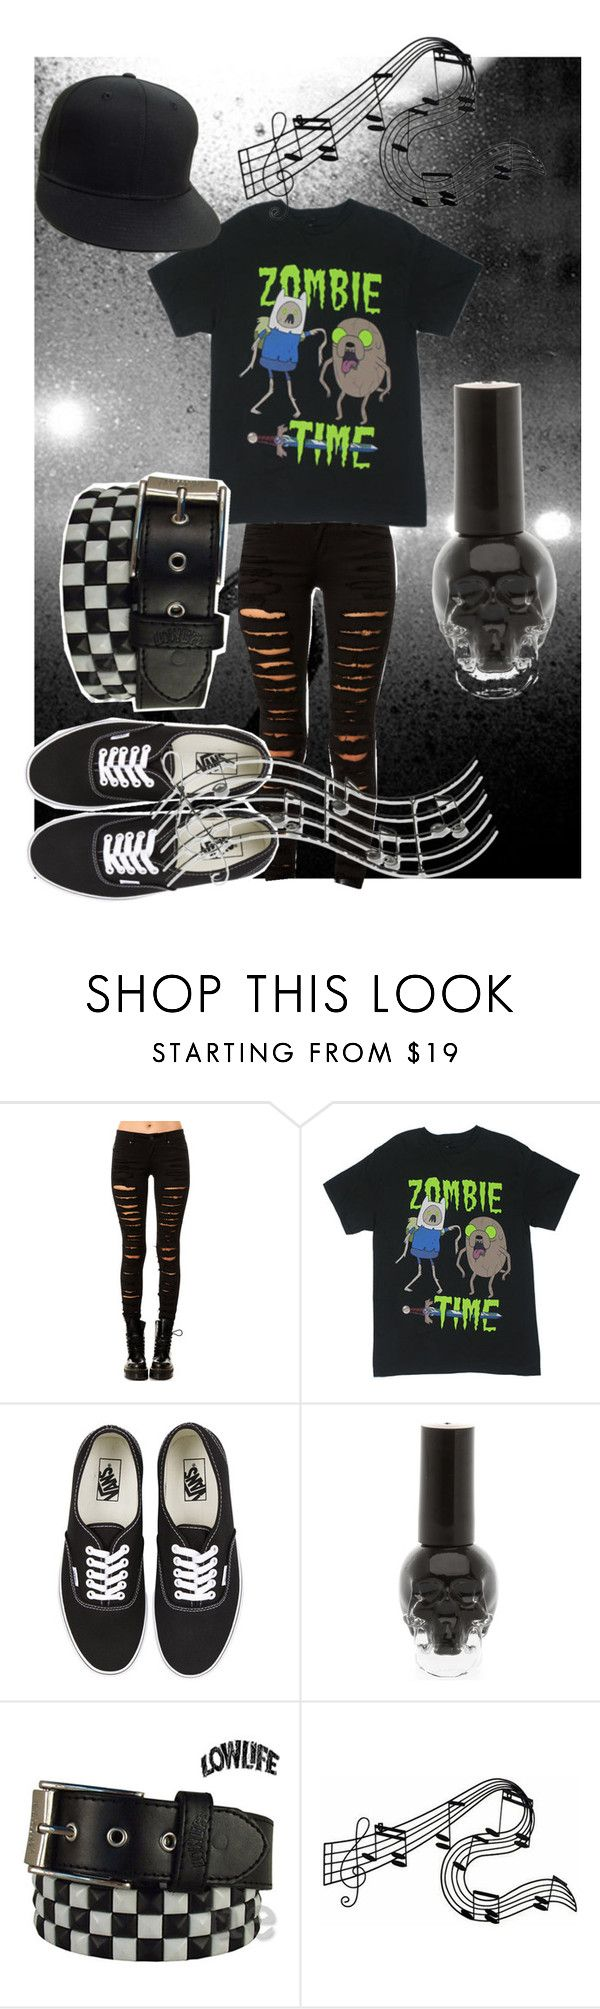 """Gig"" by perfect-in-black ❤ liked on Polyvore featuring Tripp, Vans, Lowlife, WALL and Music Notes"